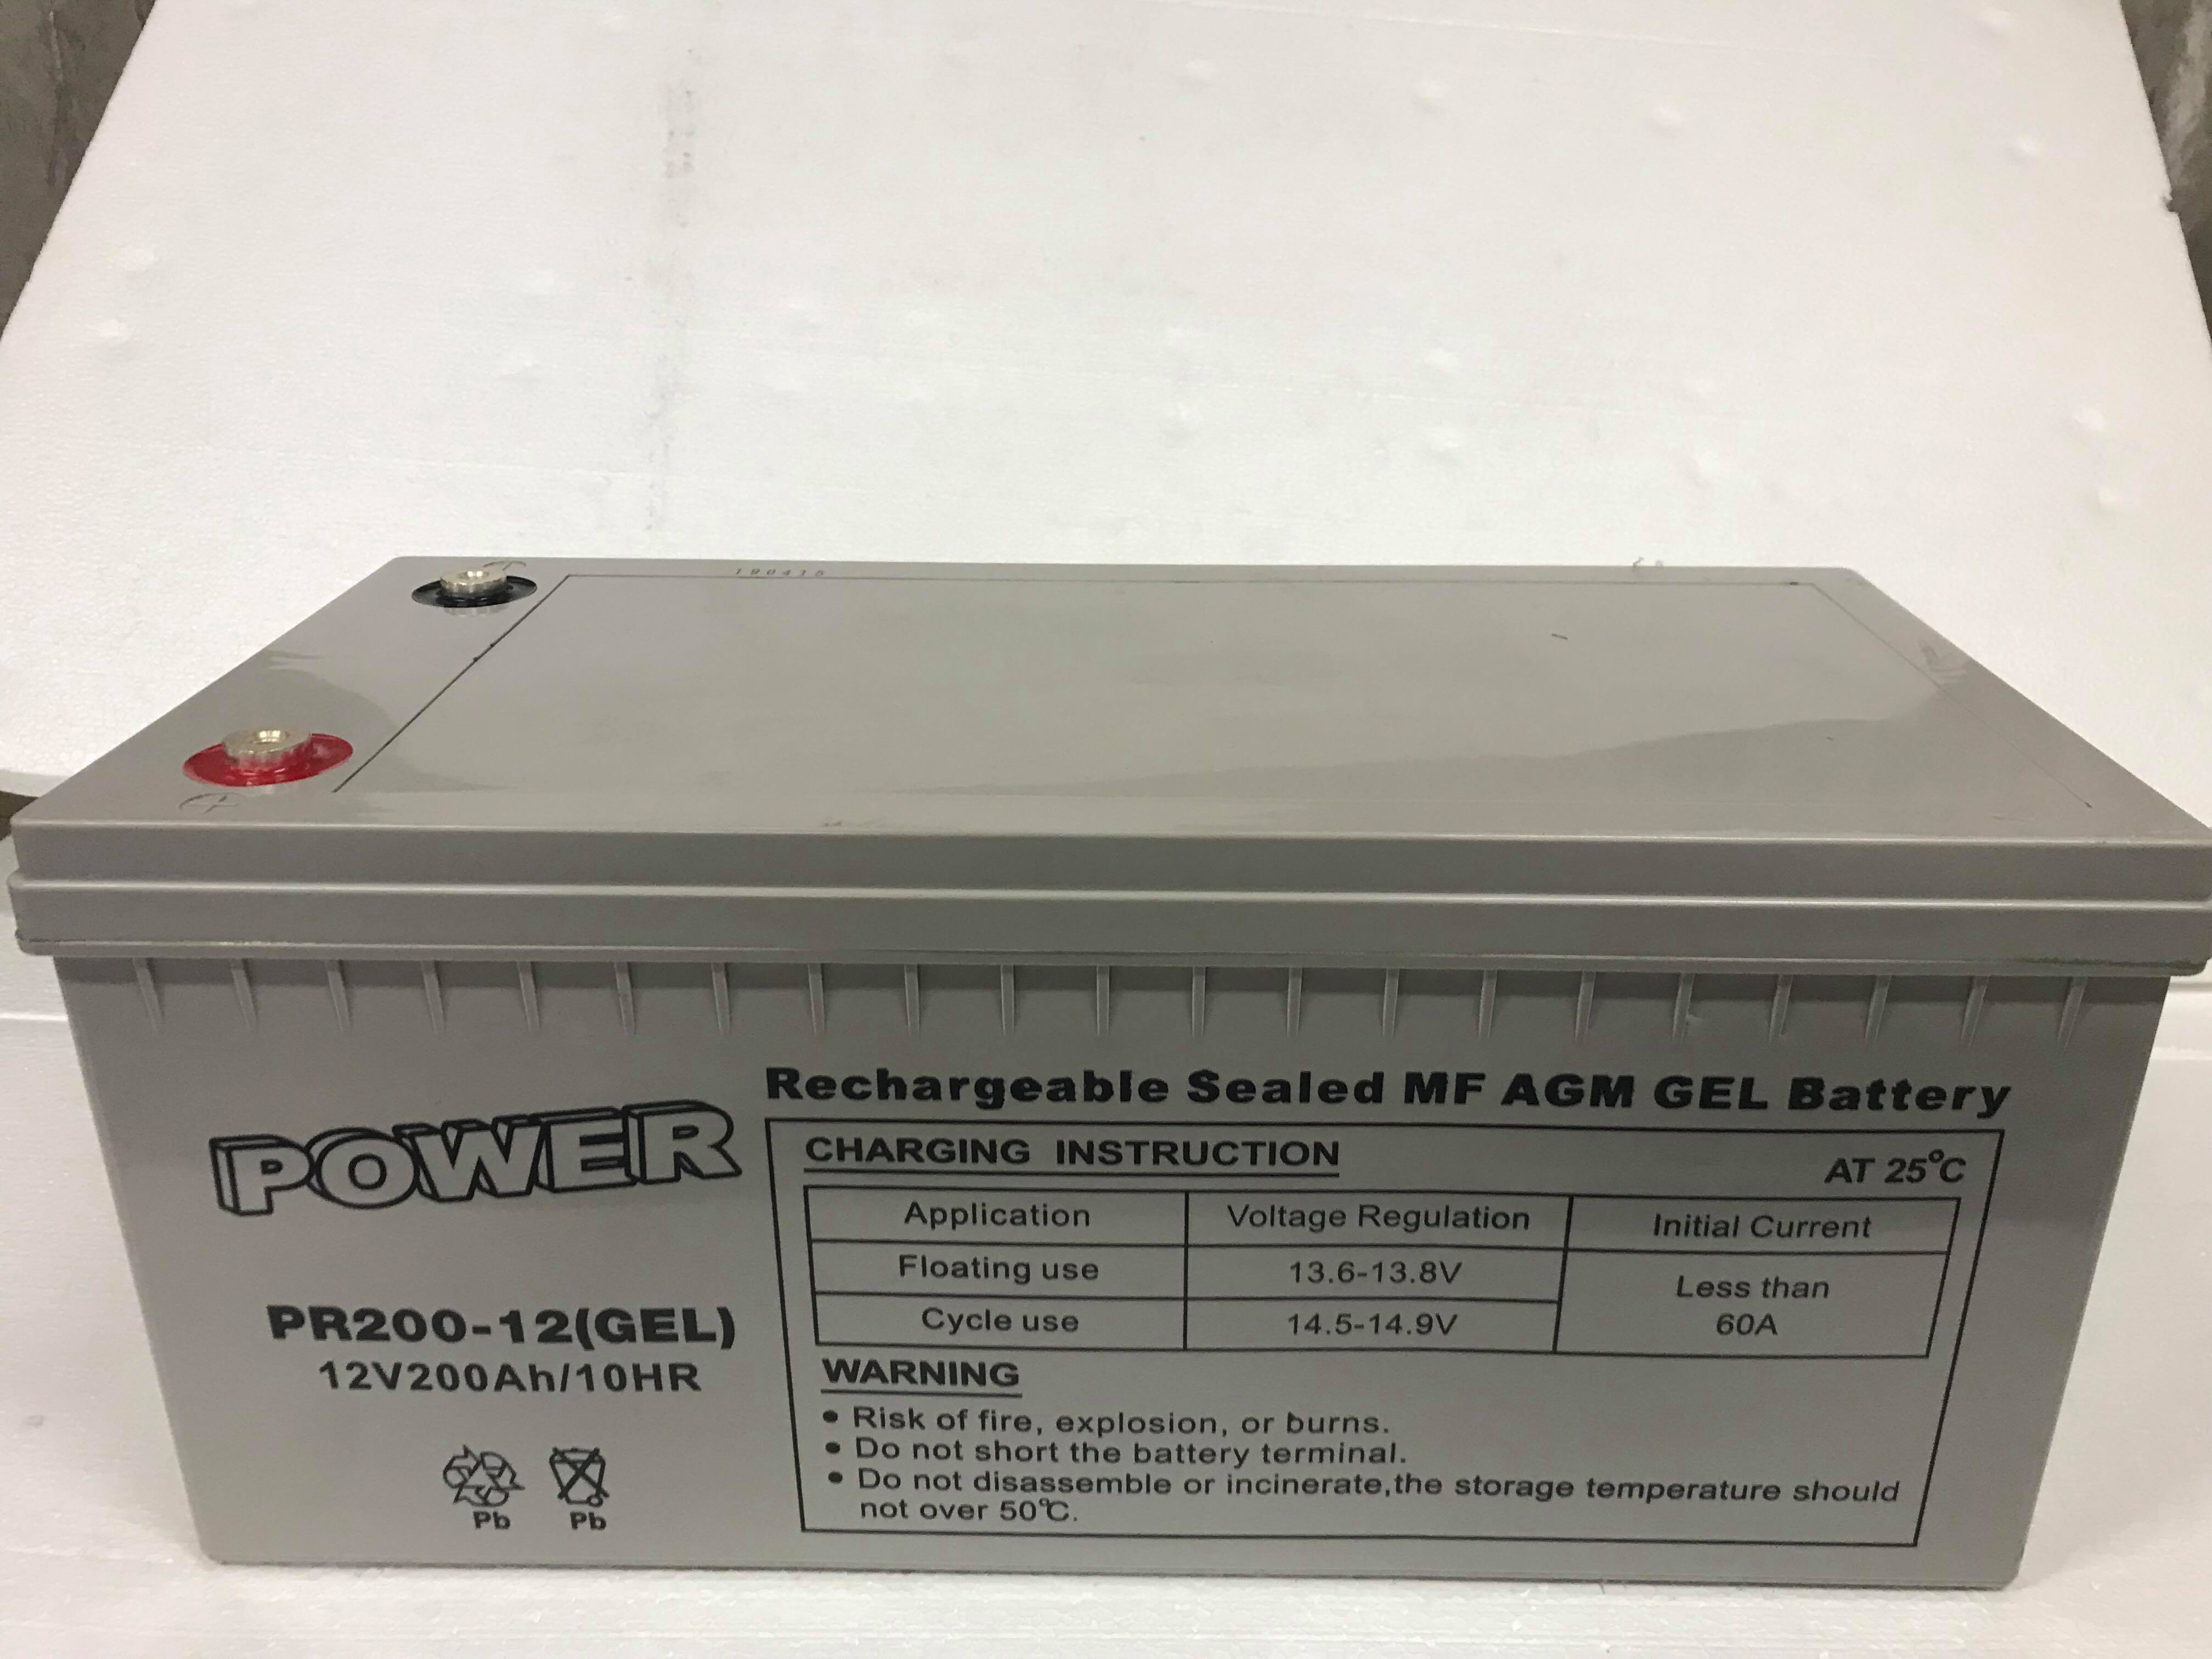 POWER (GEL) MARINE & SOLAR 12V 200AH